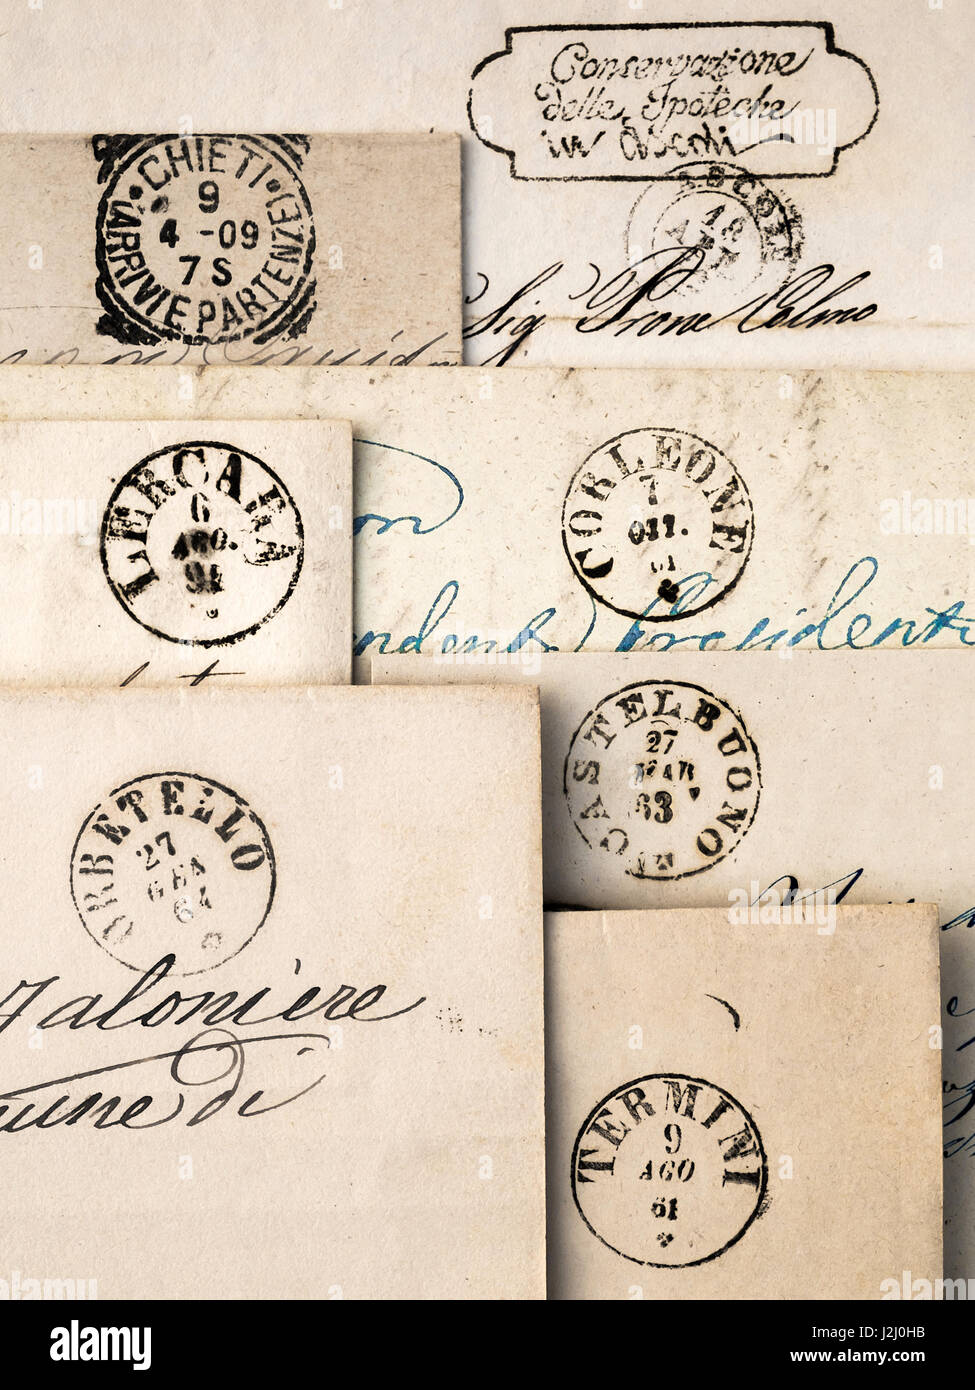 Early 19th century hand-written Italian envelopes. - Stock Image